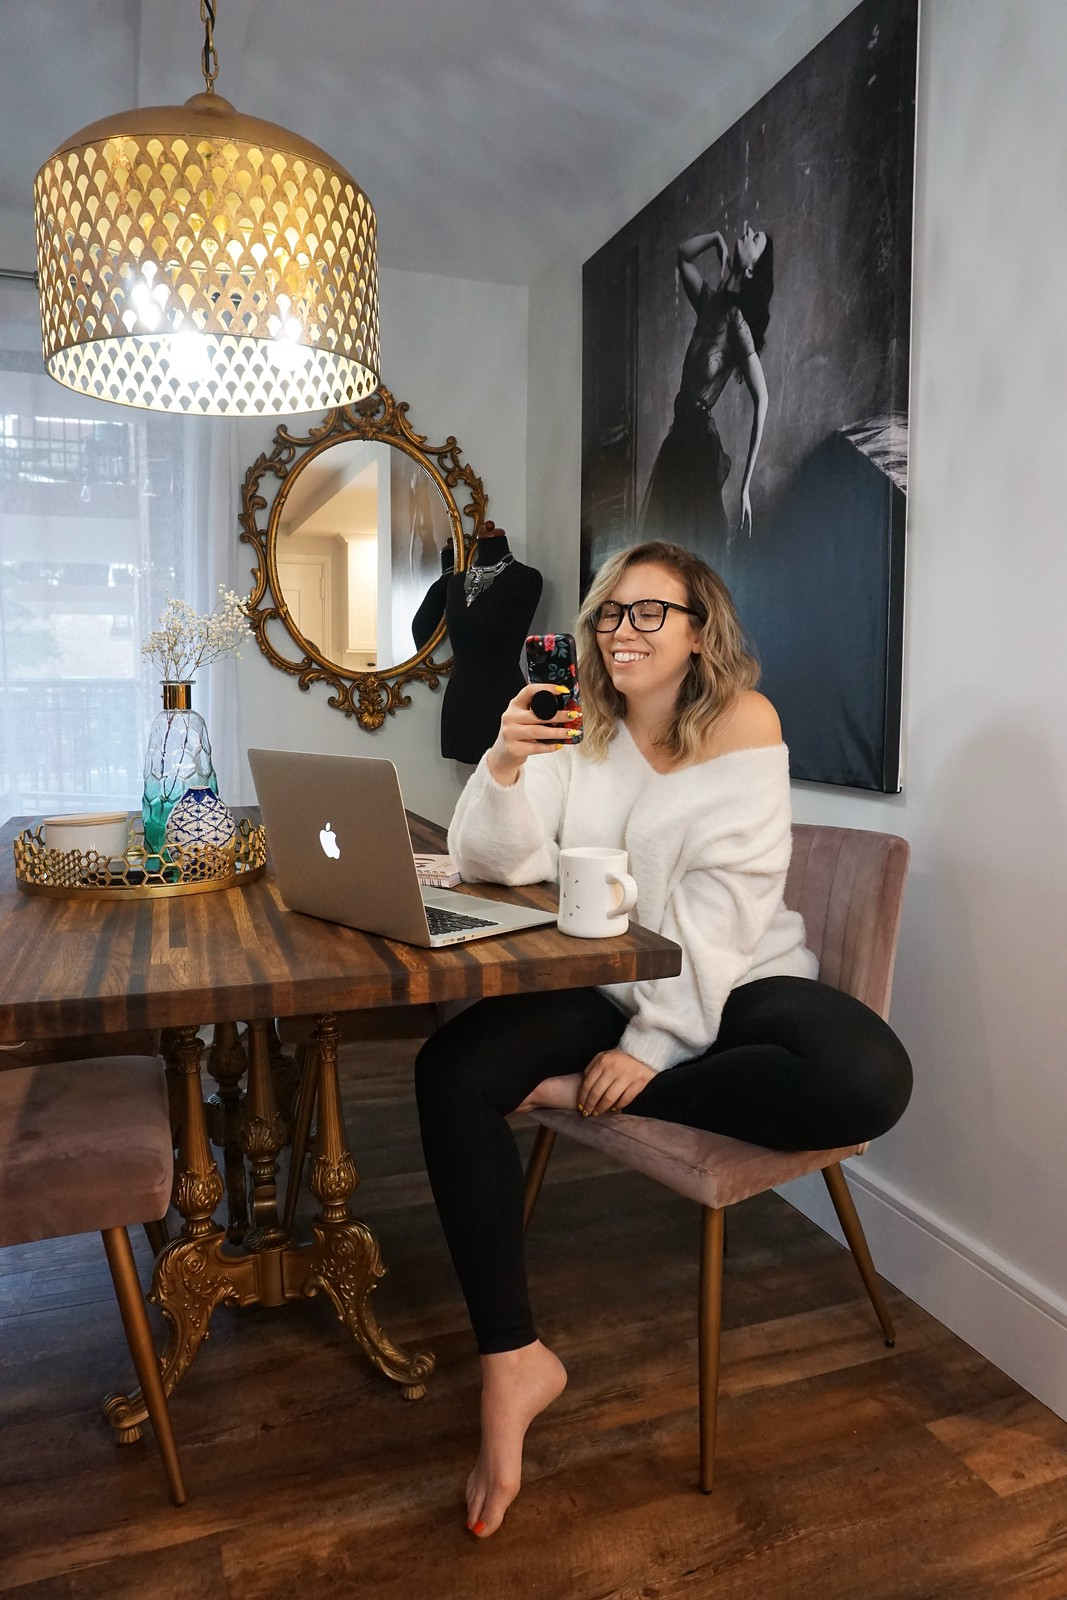 White Sweater Black Leggings | Easy Work At Home Look | Glam Vintage Inspired Dining Room Work Station | 10 Comfortable Quarantine Outfits That Aren't Sweatpants | Stay At Home Outfit Ideas | Shelter in Place Outfits